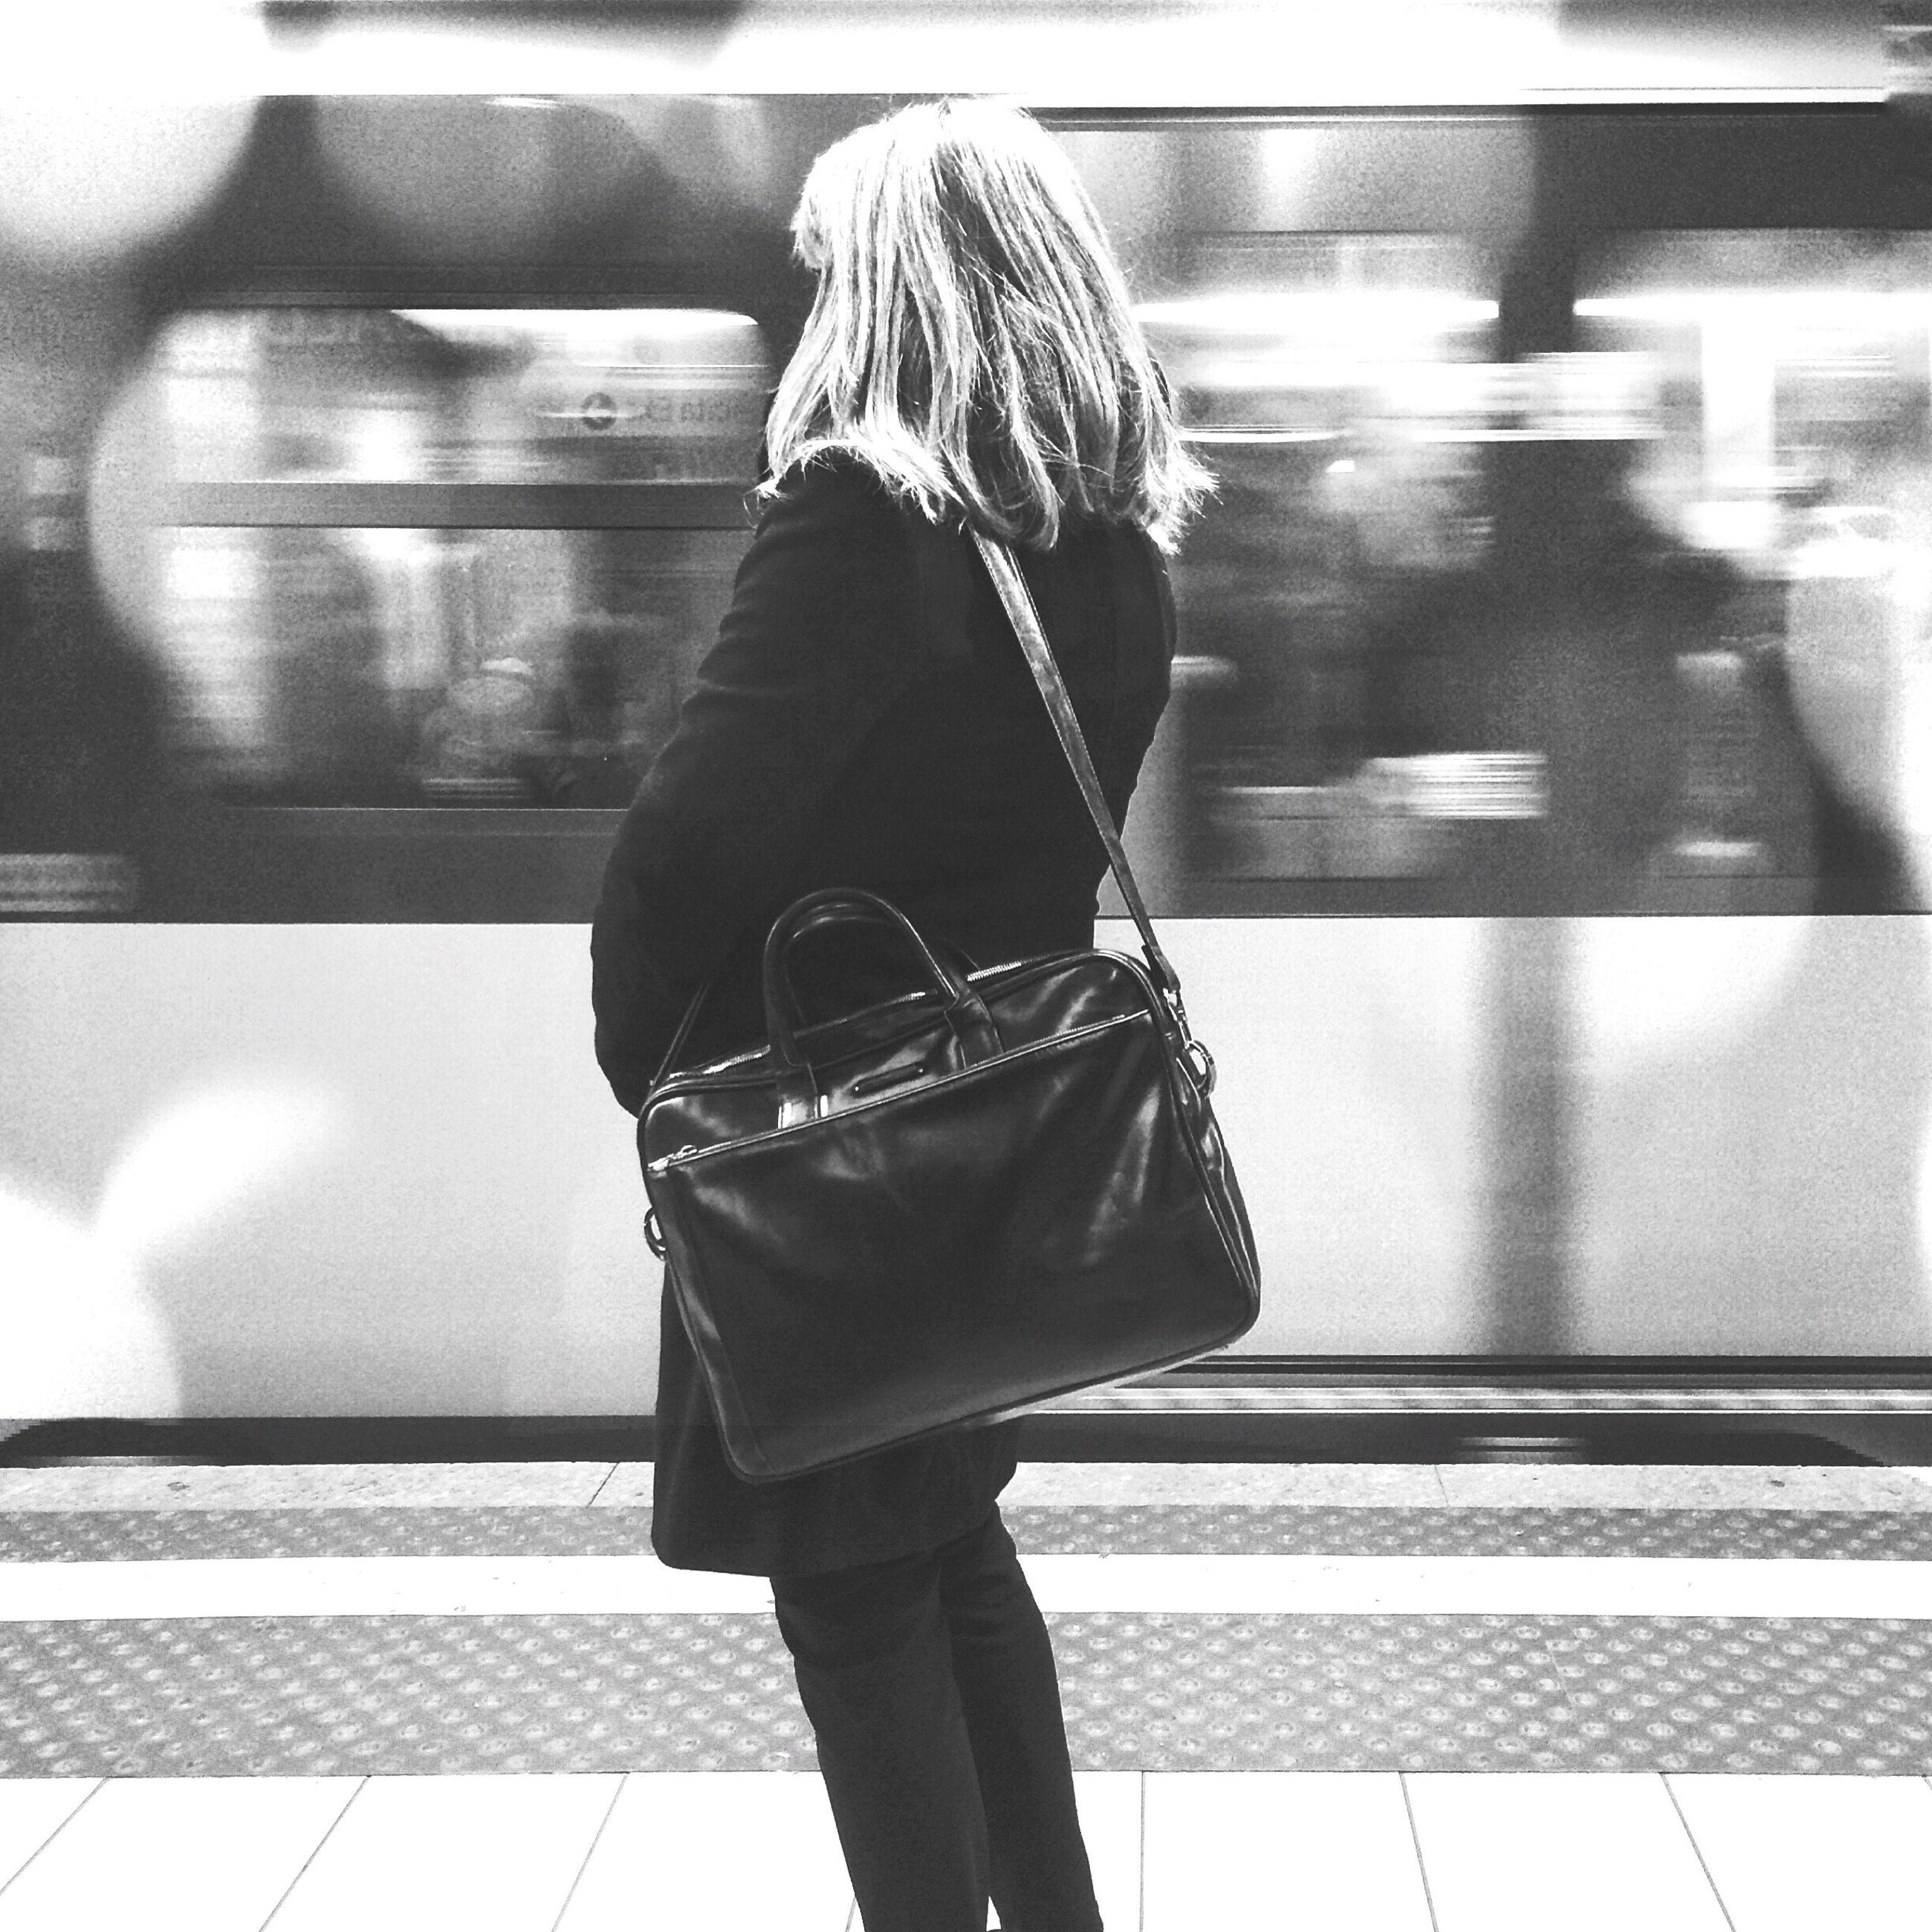 indoors, lifestyles, standing, full length, rear view, casual clothing, person, blurred motion, walking, railroad station, men, leisure activity, illuminated, motion, railroad station platform, subway station, city life, public transportation